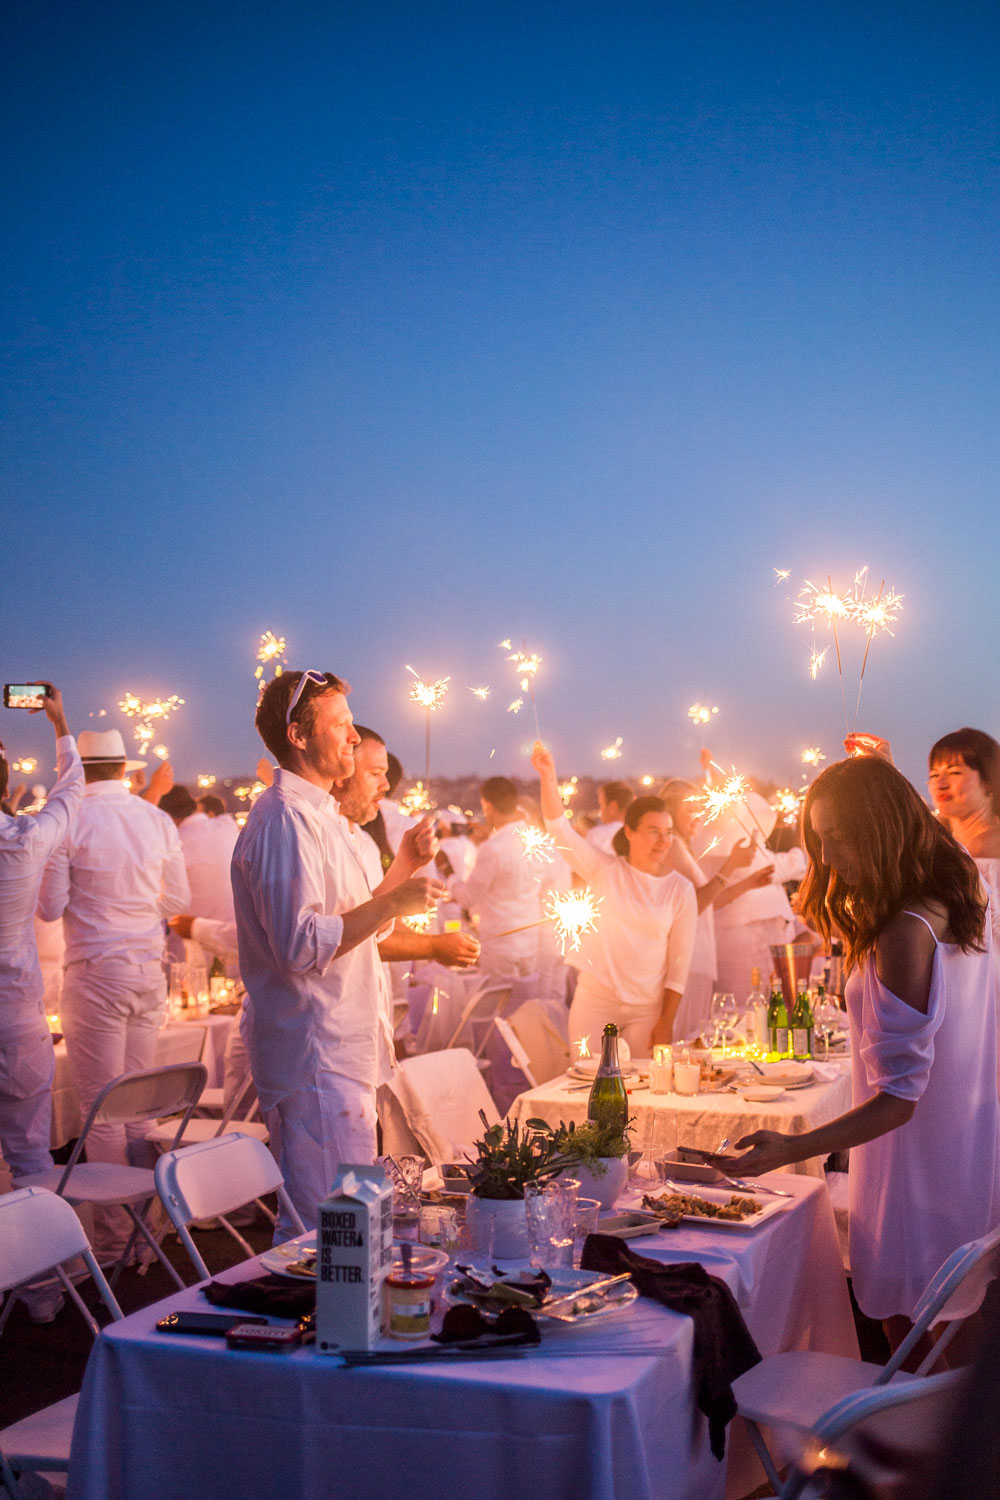 Le Diner en Blanc: Lighting Off Sparklers // Hello Rigby Seattle Lifestyle Blog